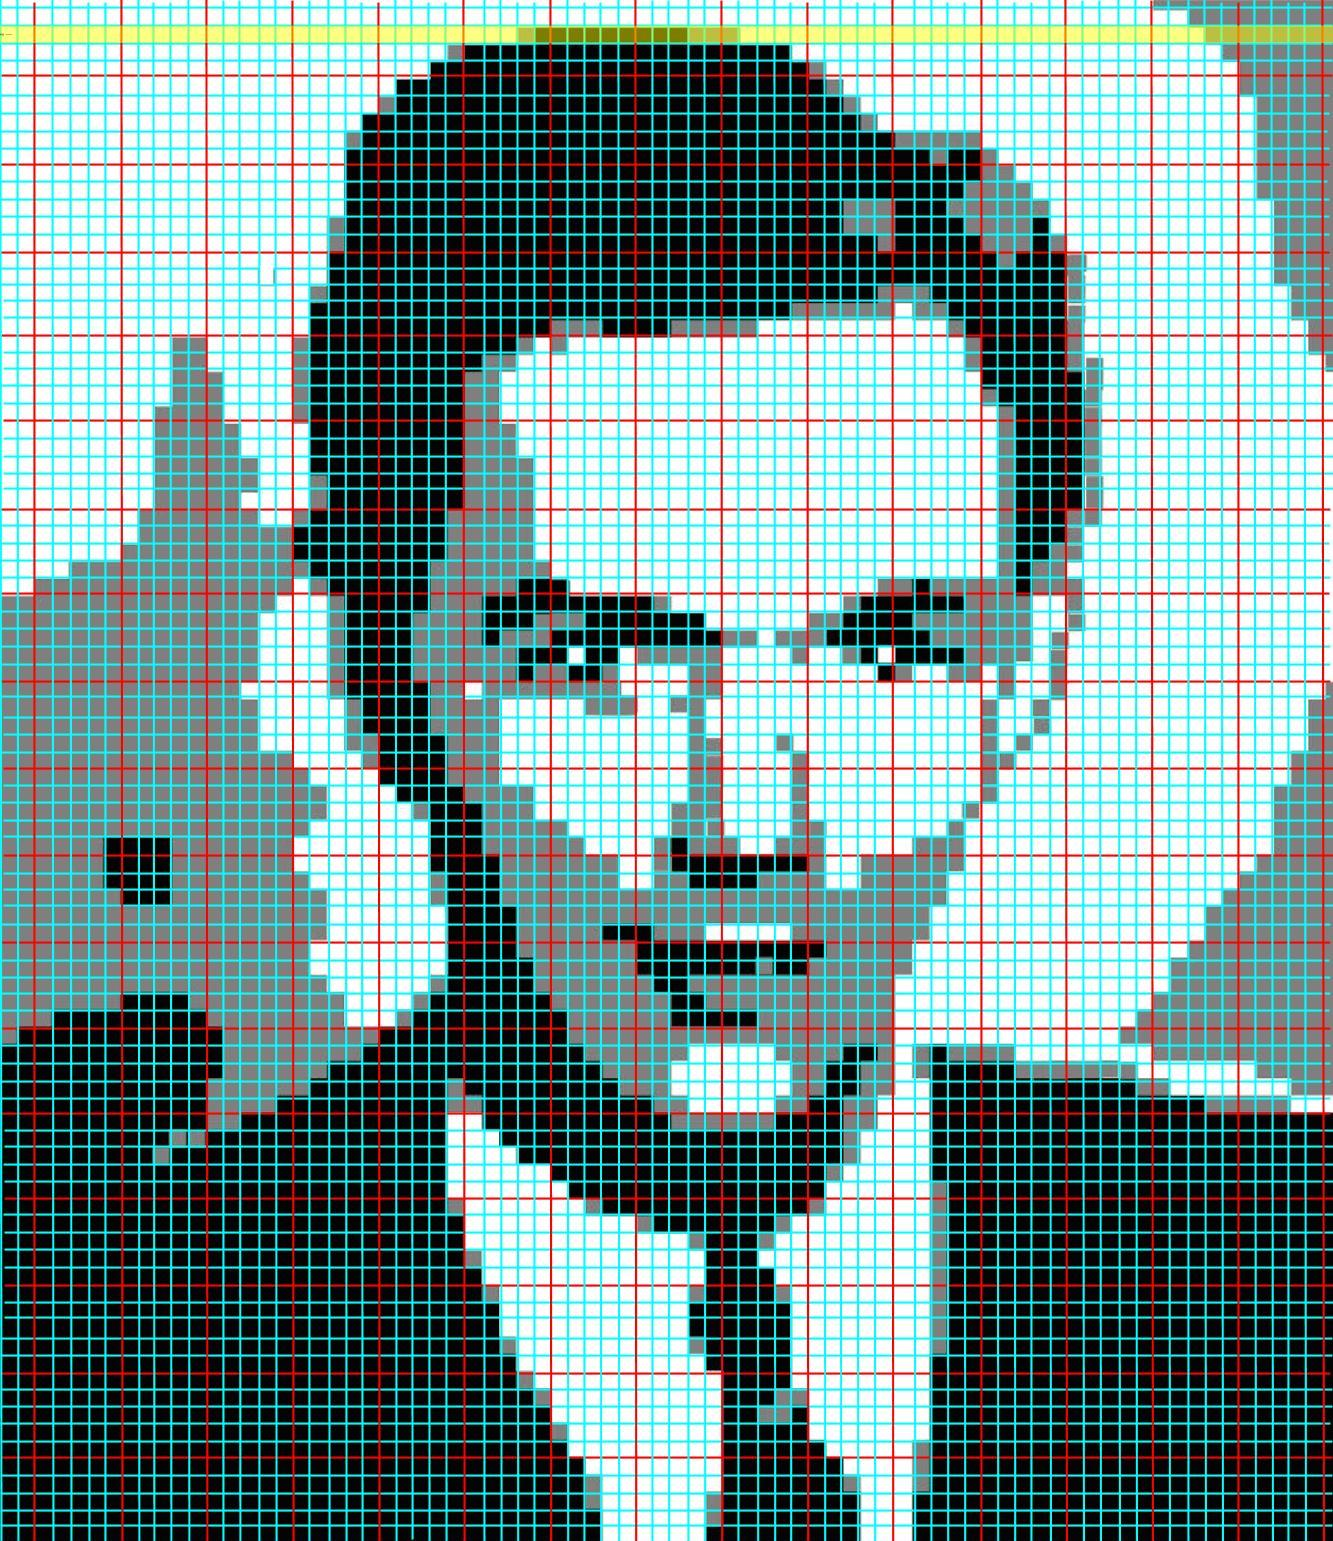 Filet Crochet Portraits Knits For Life